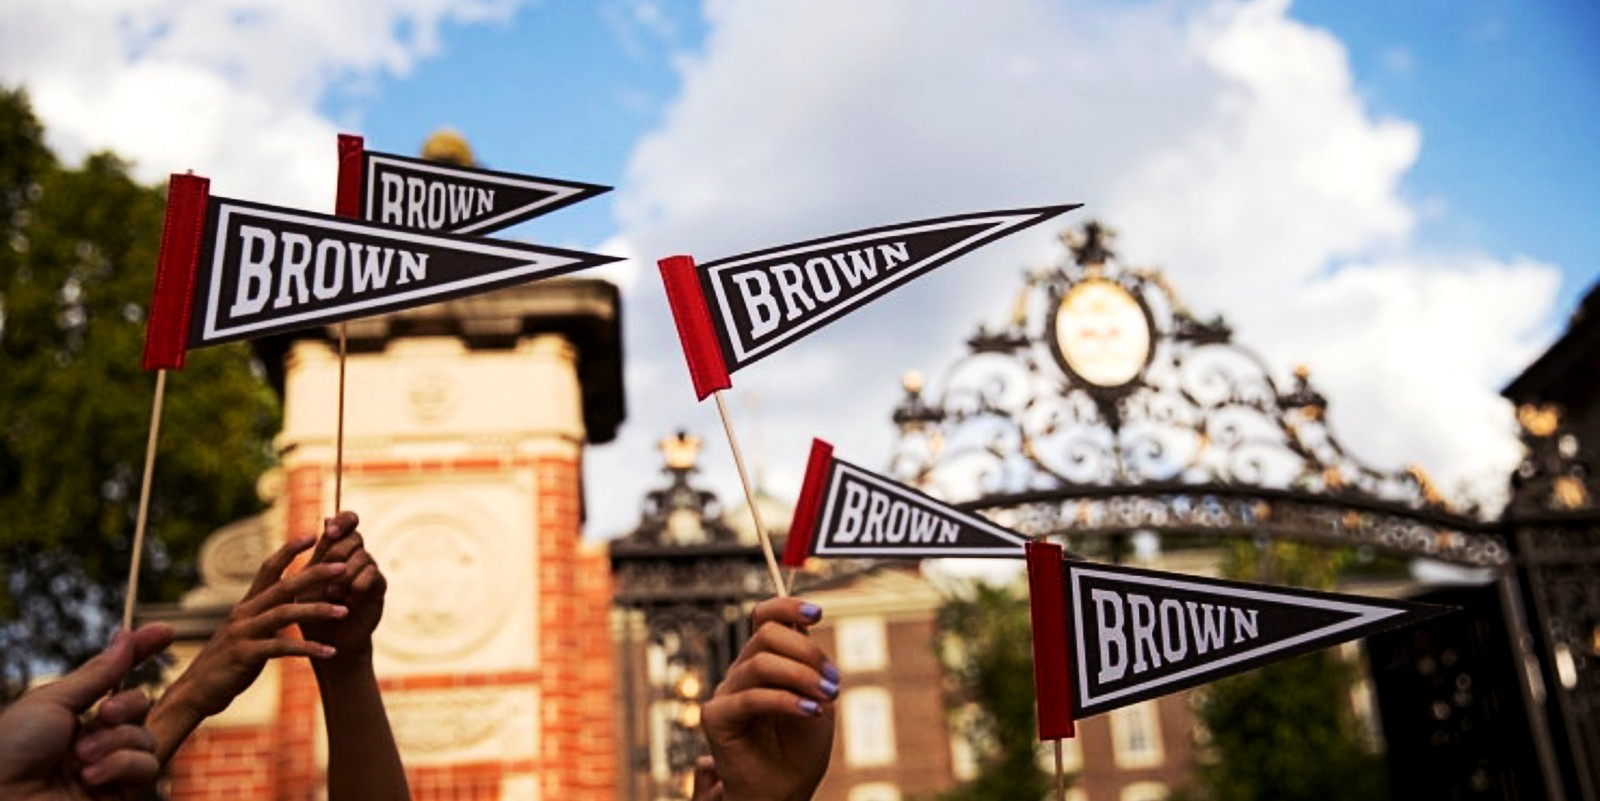 Brown University hit by cyberattack, some systems still offline